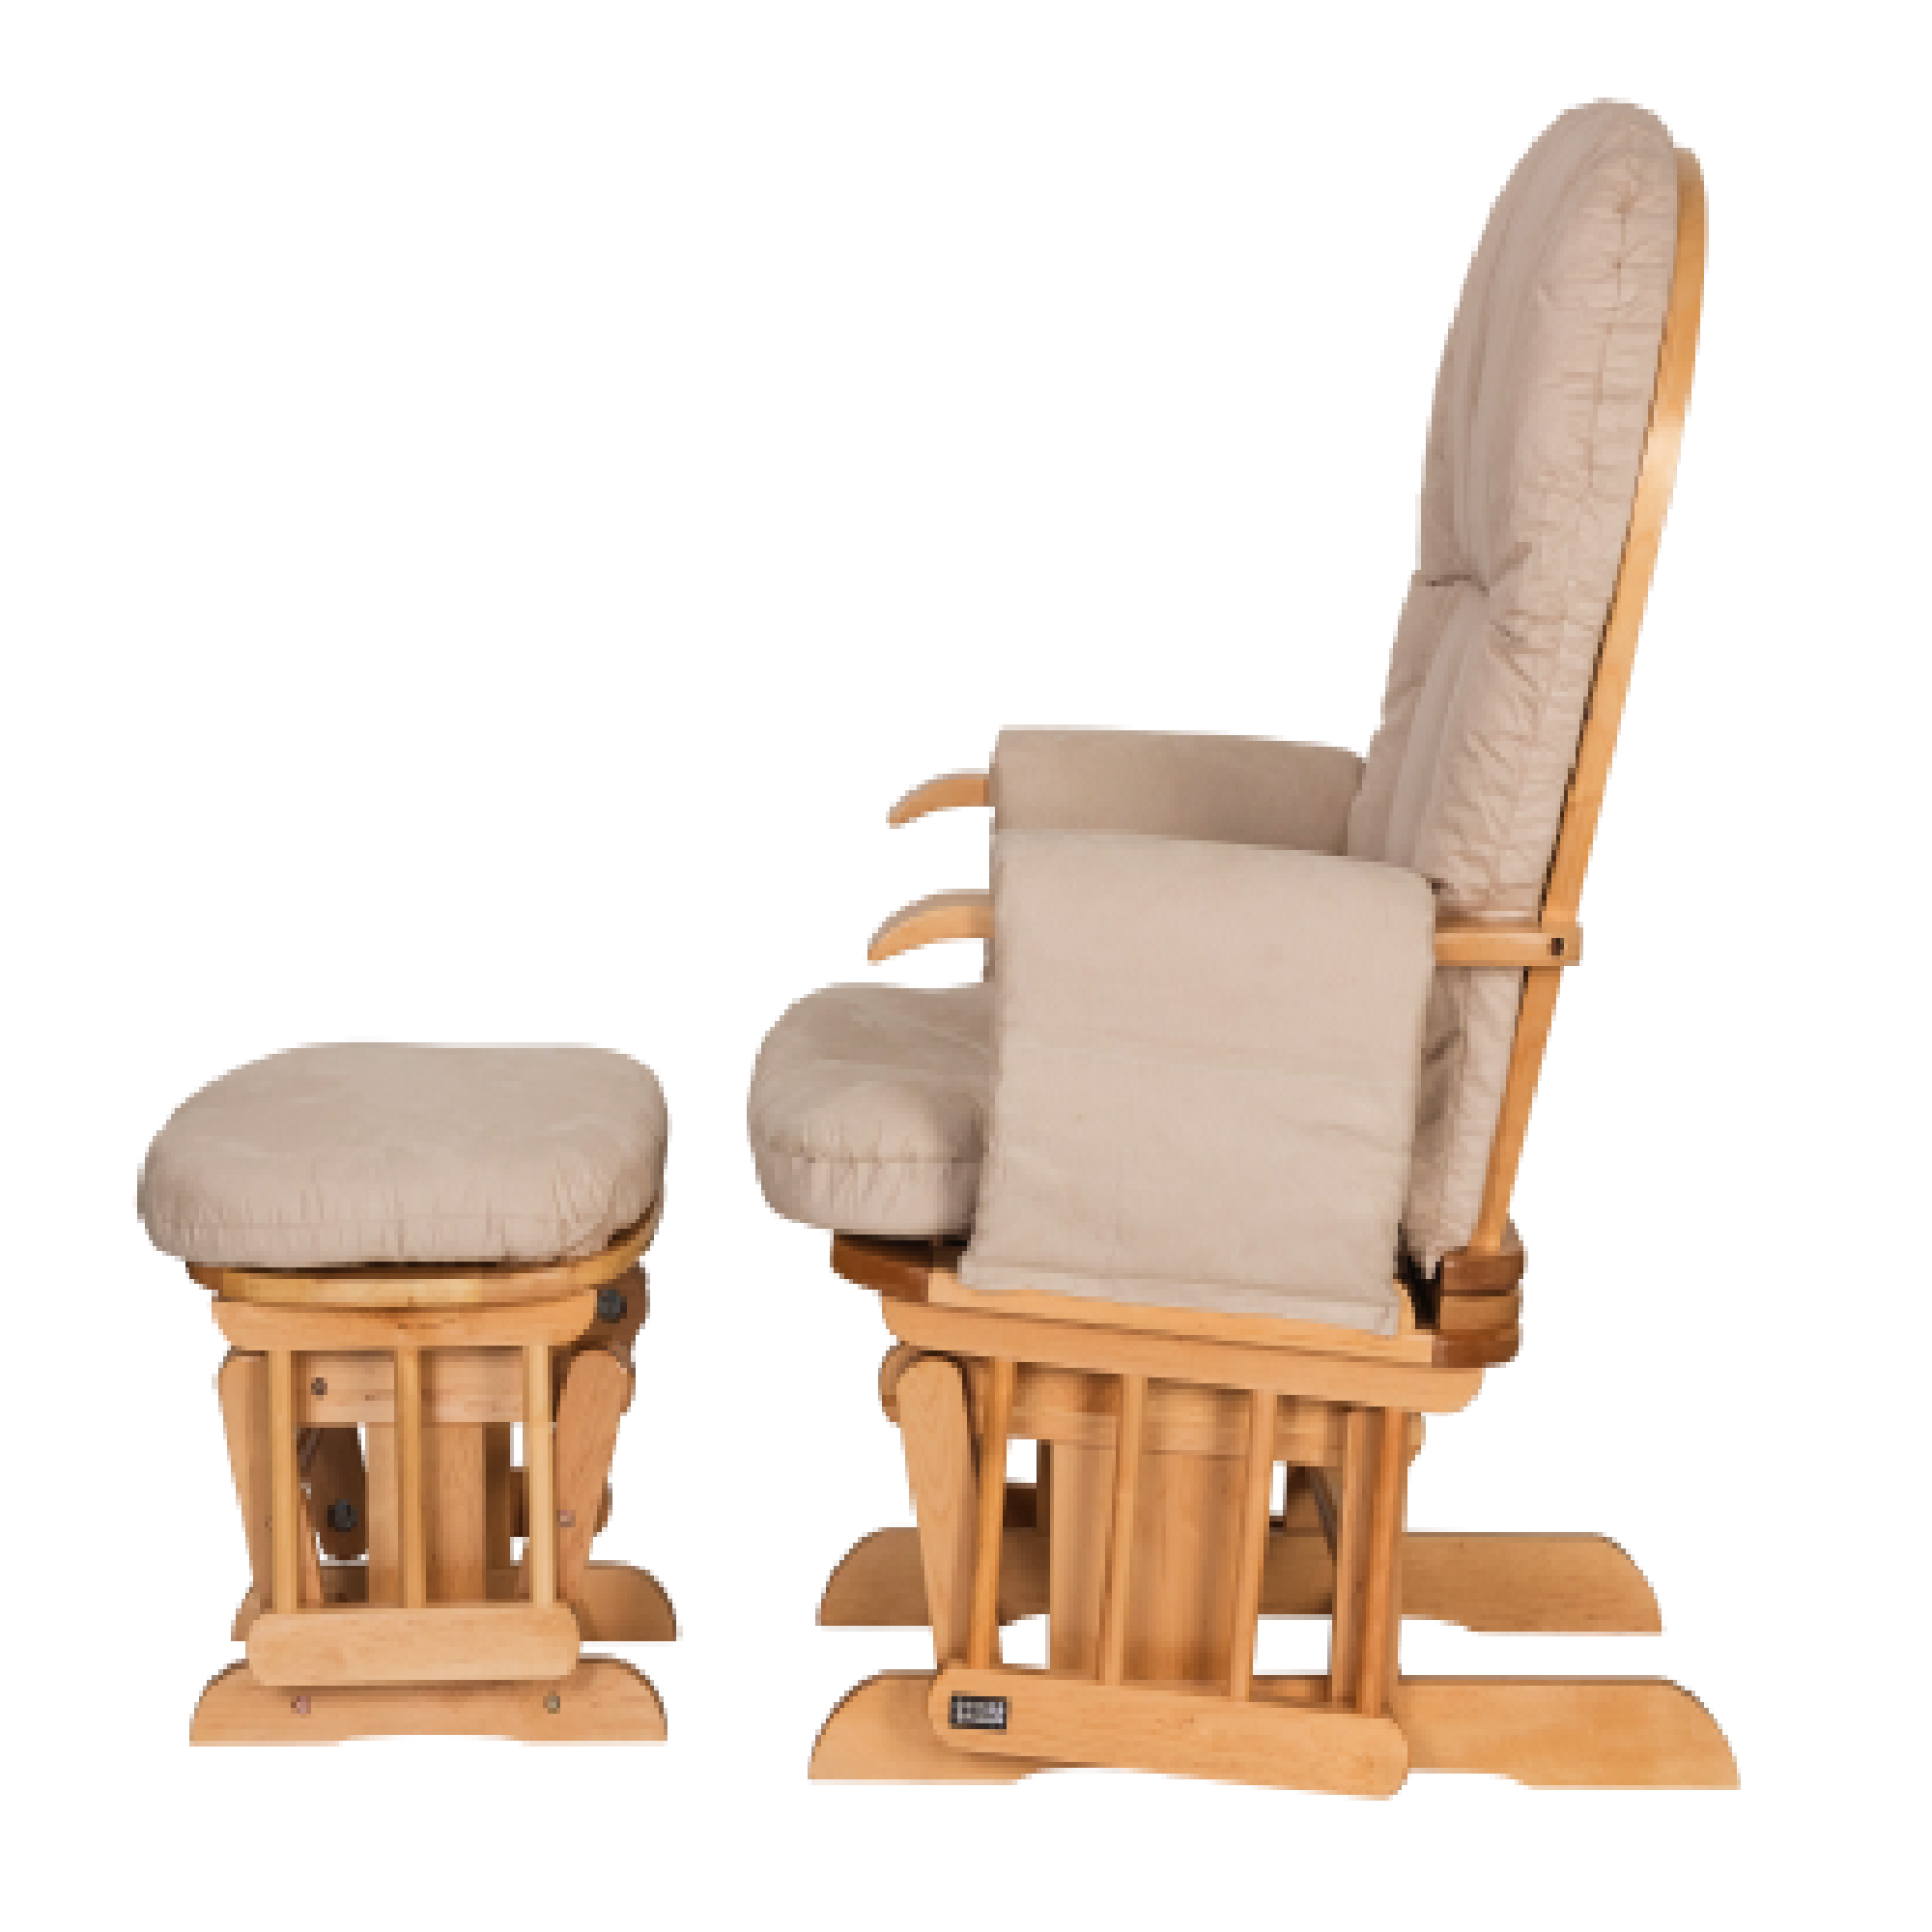 new styles 55092 18f3d Tutti Bambini Reclining Glider Chair & Stool - Natural with Cream Cushions